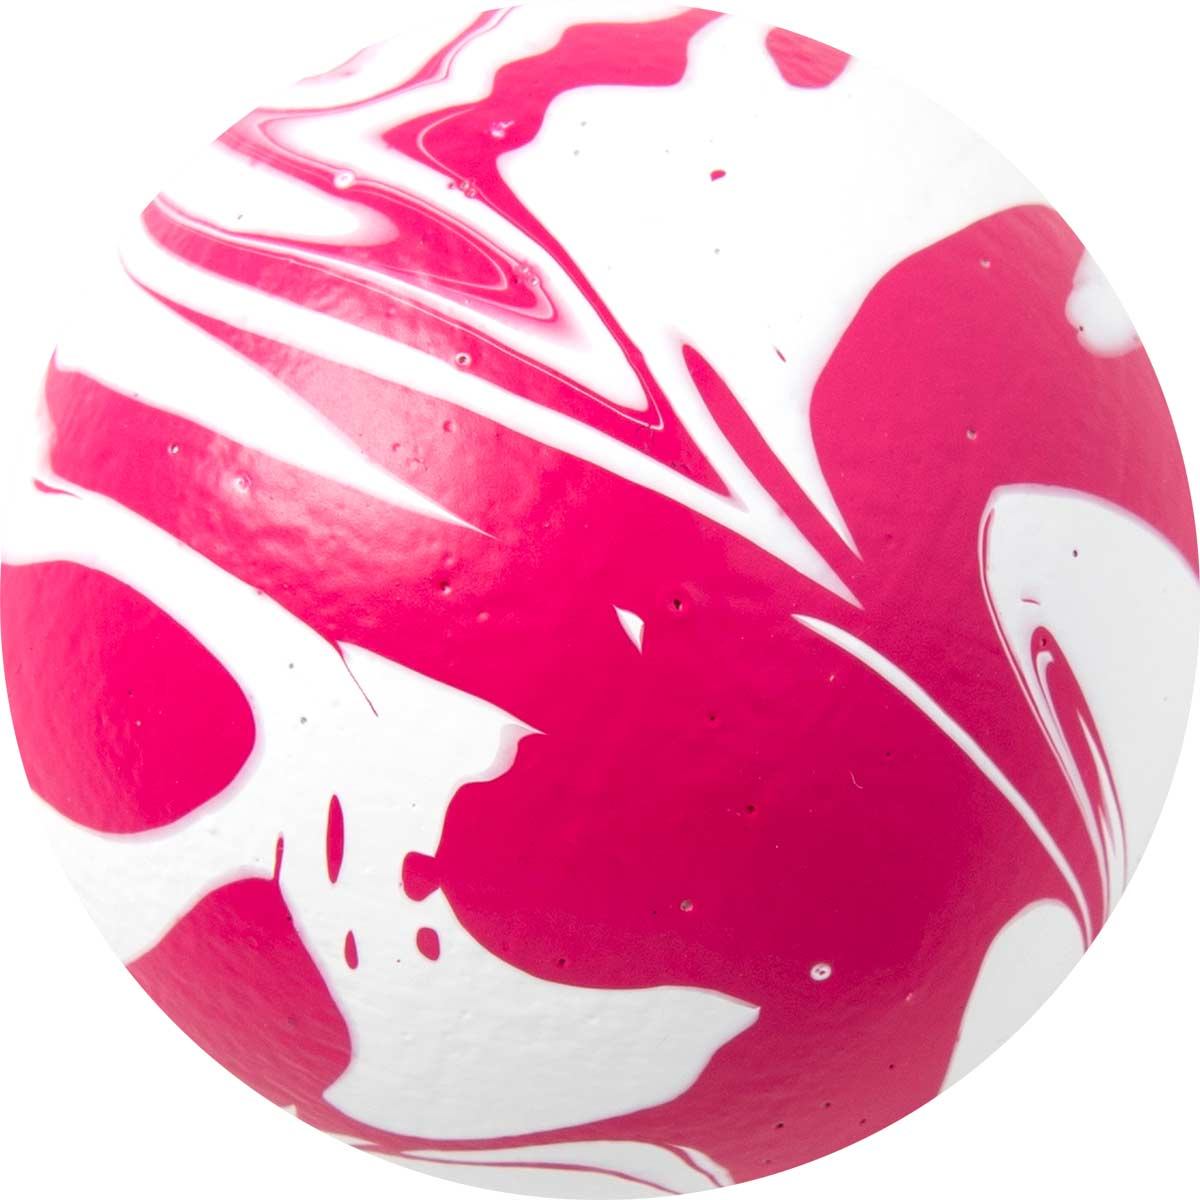 FolkArt ® Marbling Paint - Hot Pink, 2 oz. - 16923